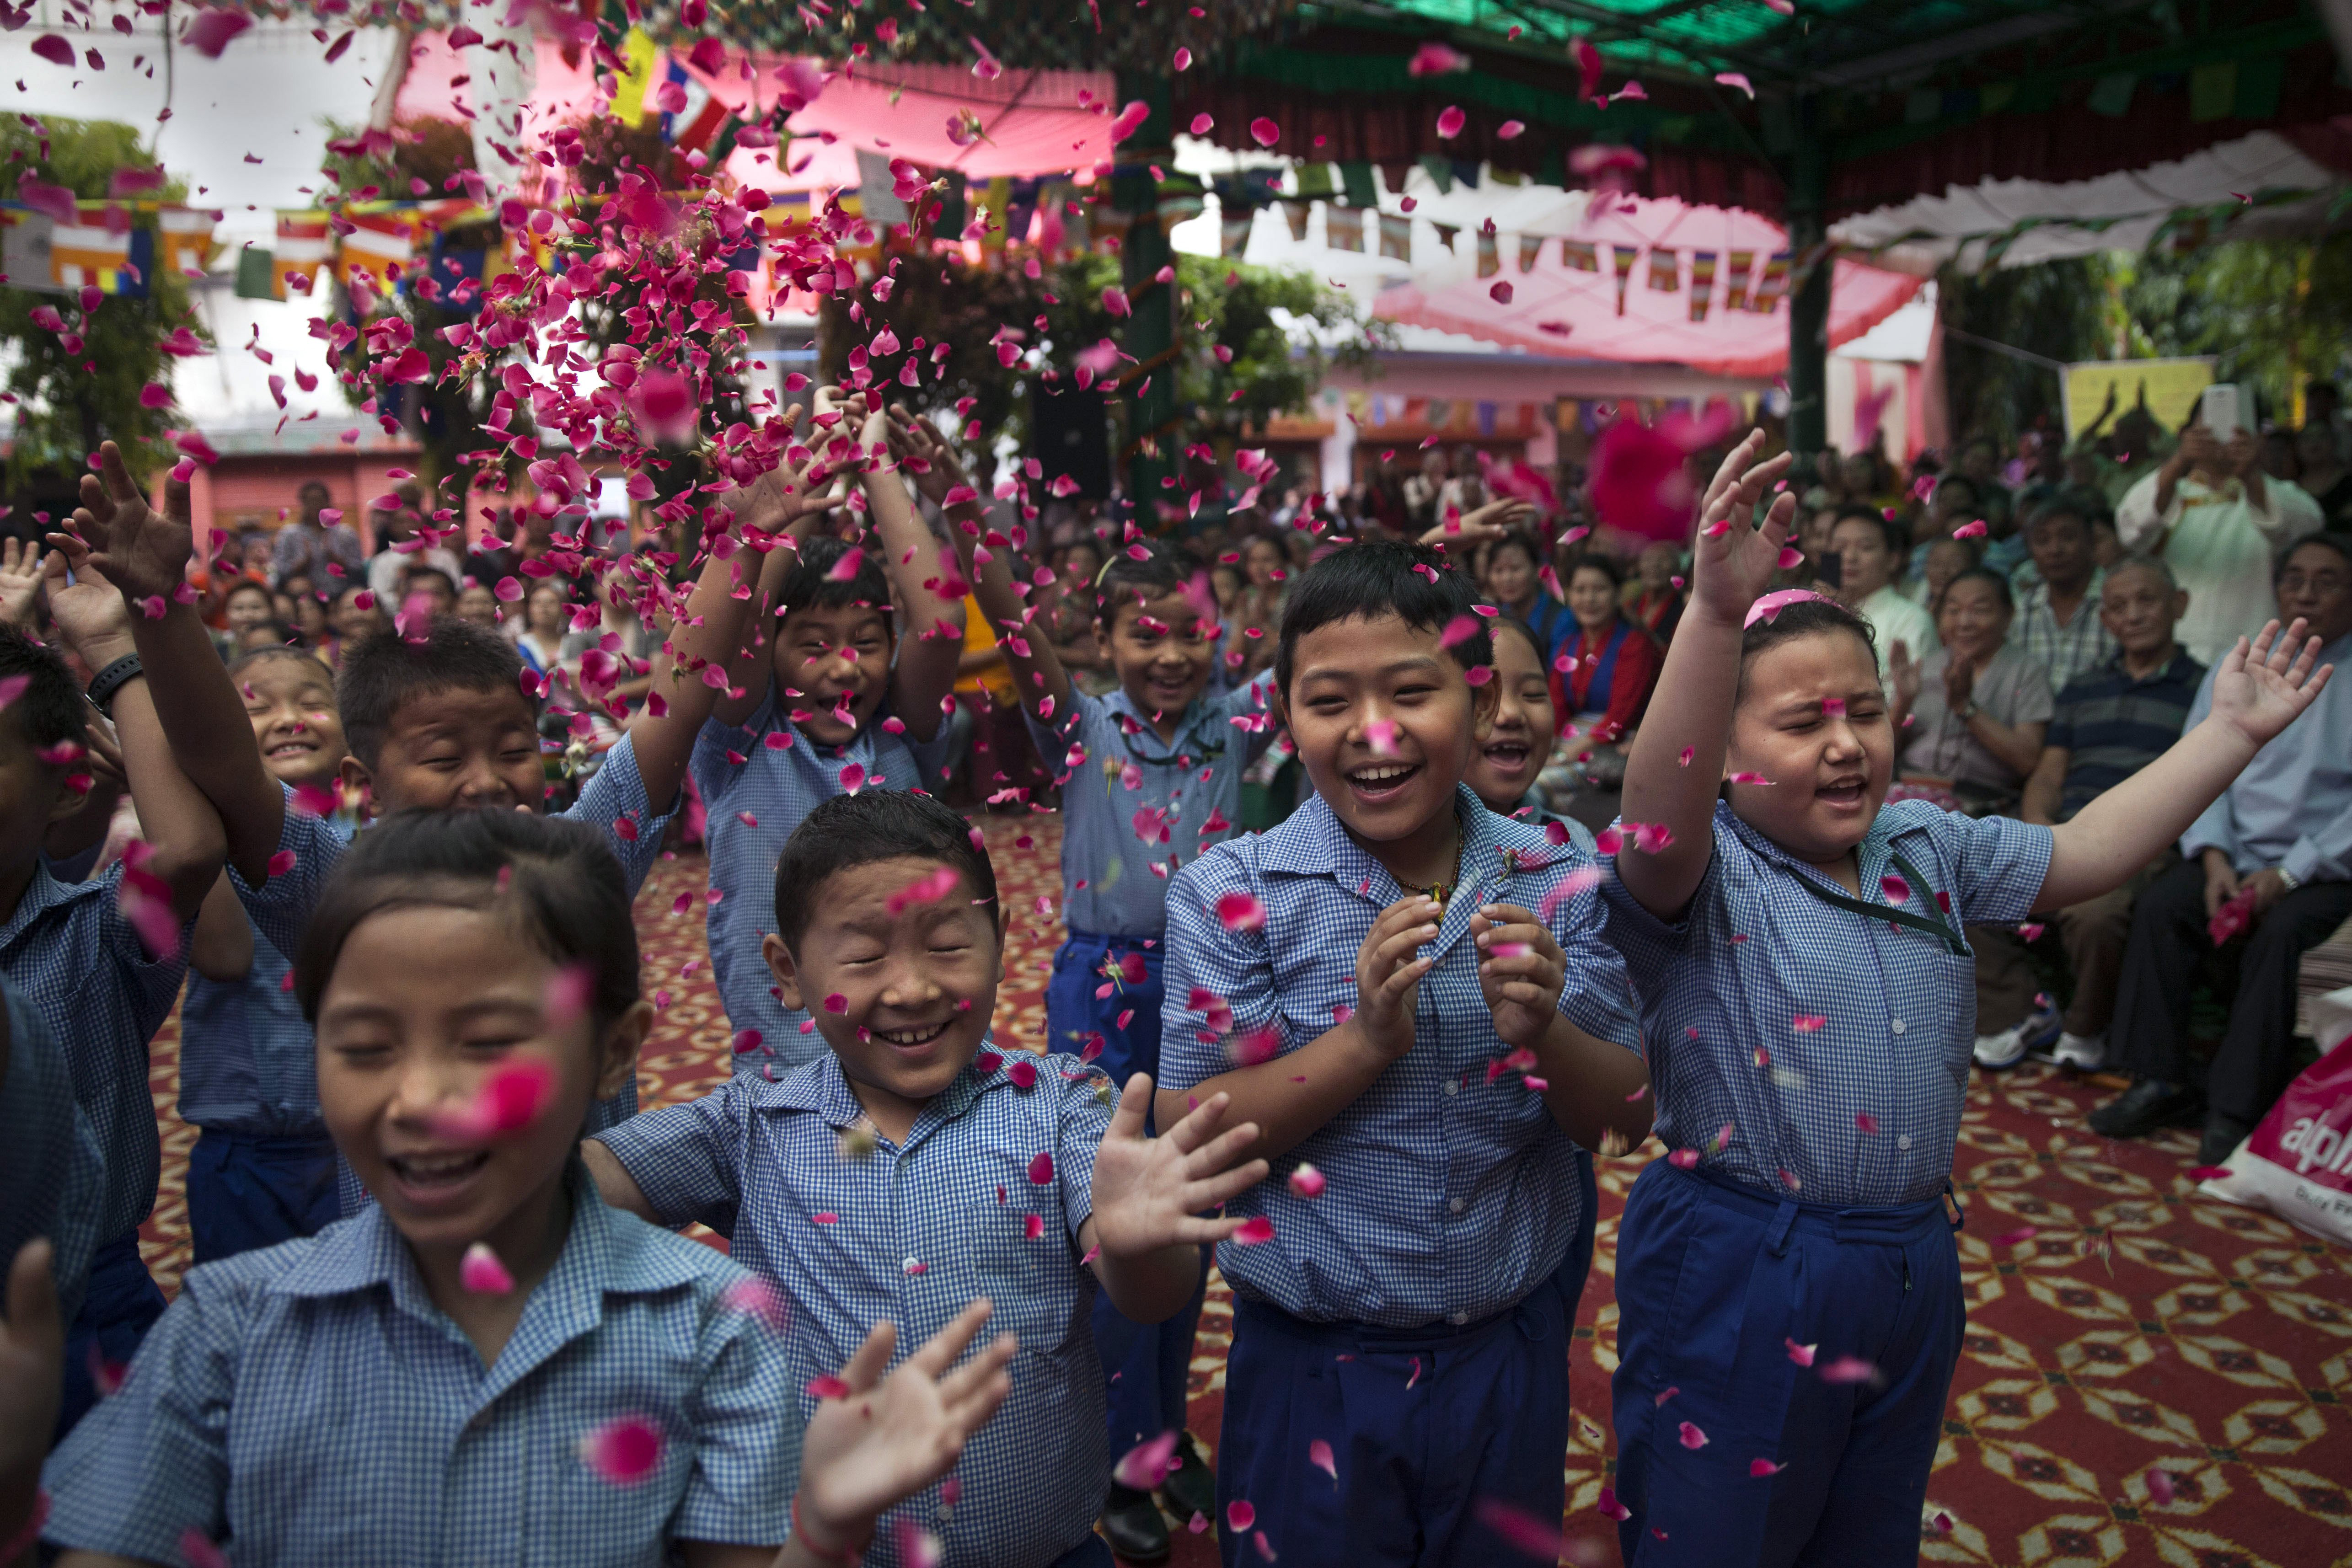 Exiled Tibetan school children throw flowers in the air as they sing a birthday song to celebrate the Dalai Lama's 80th birthday in New Delhi, India on July 6, 2015.